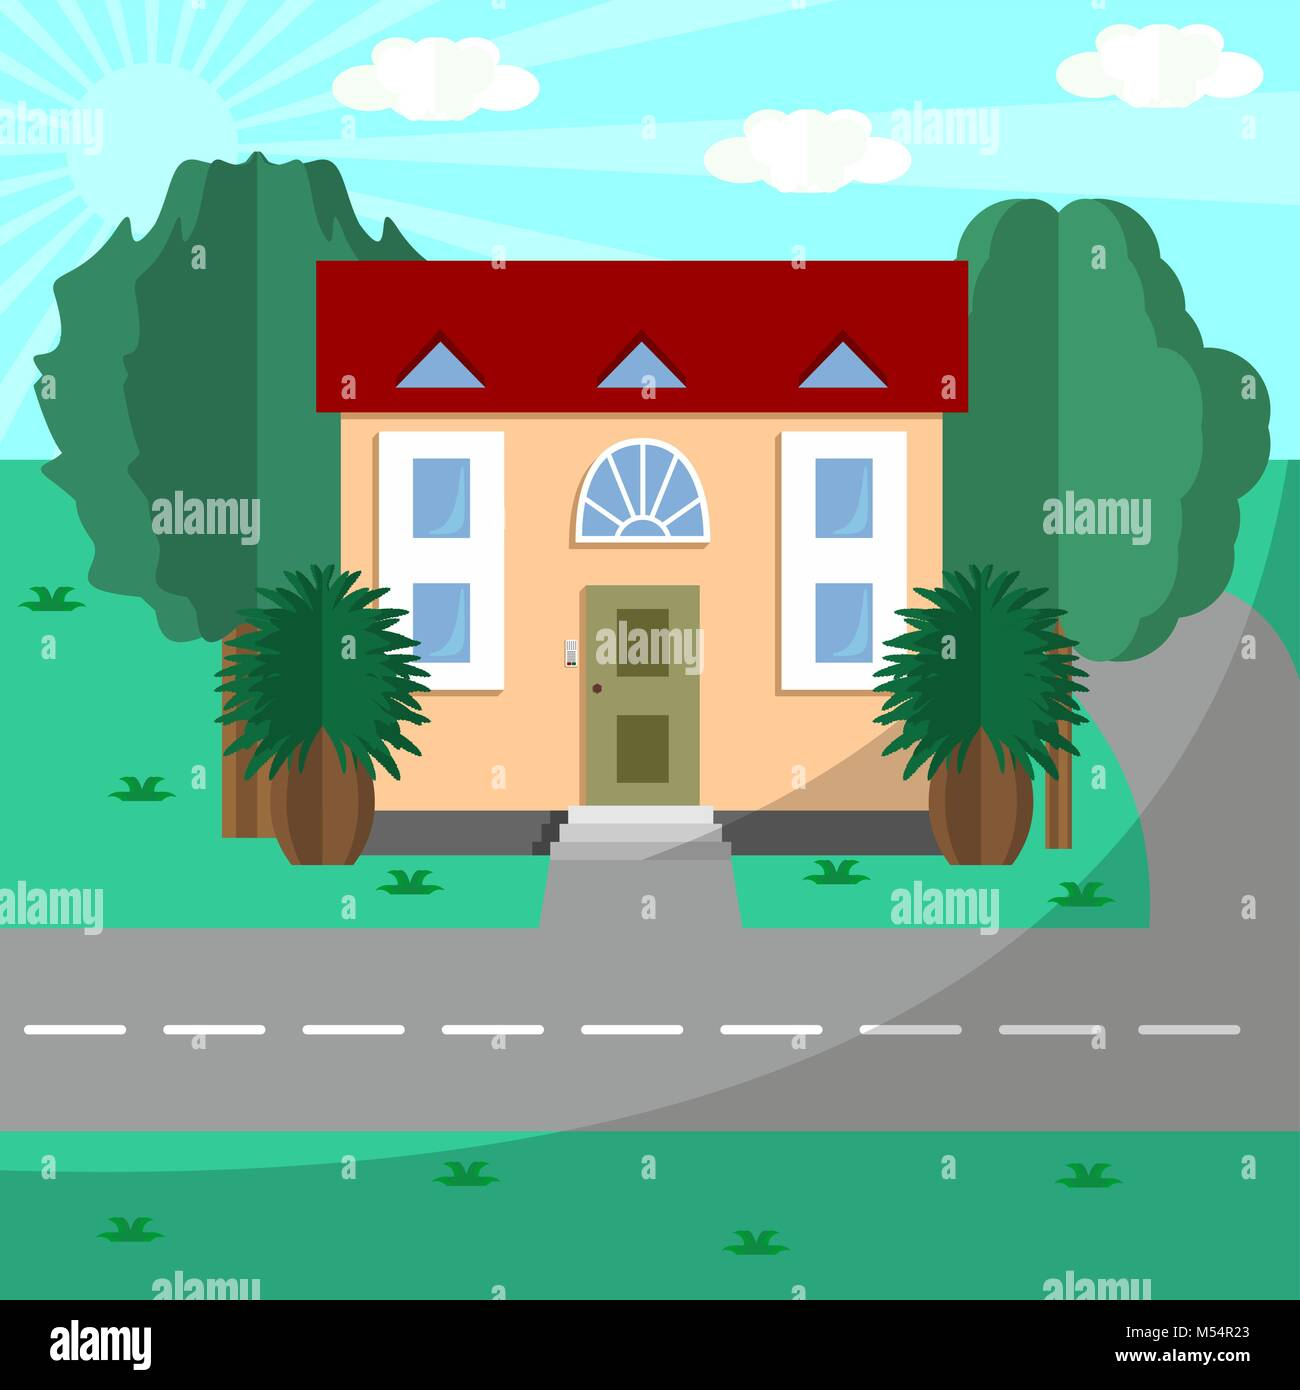 House by the road among green trees - Stock Vector